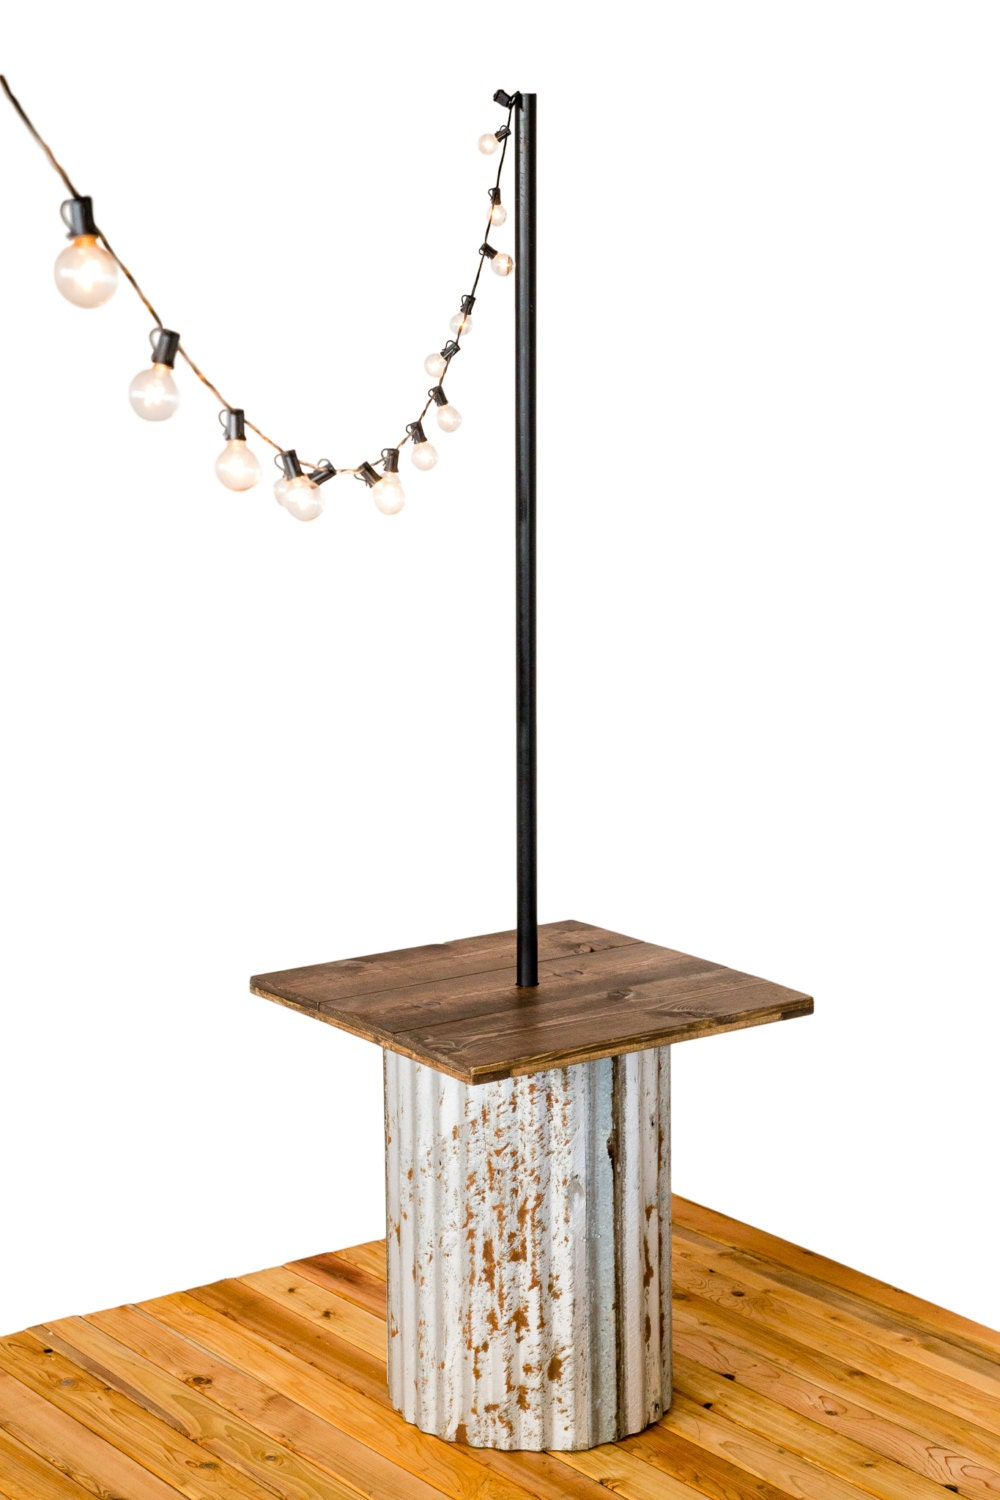 Iyn tin stands hang string lights - How to hang up string lights ...